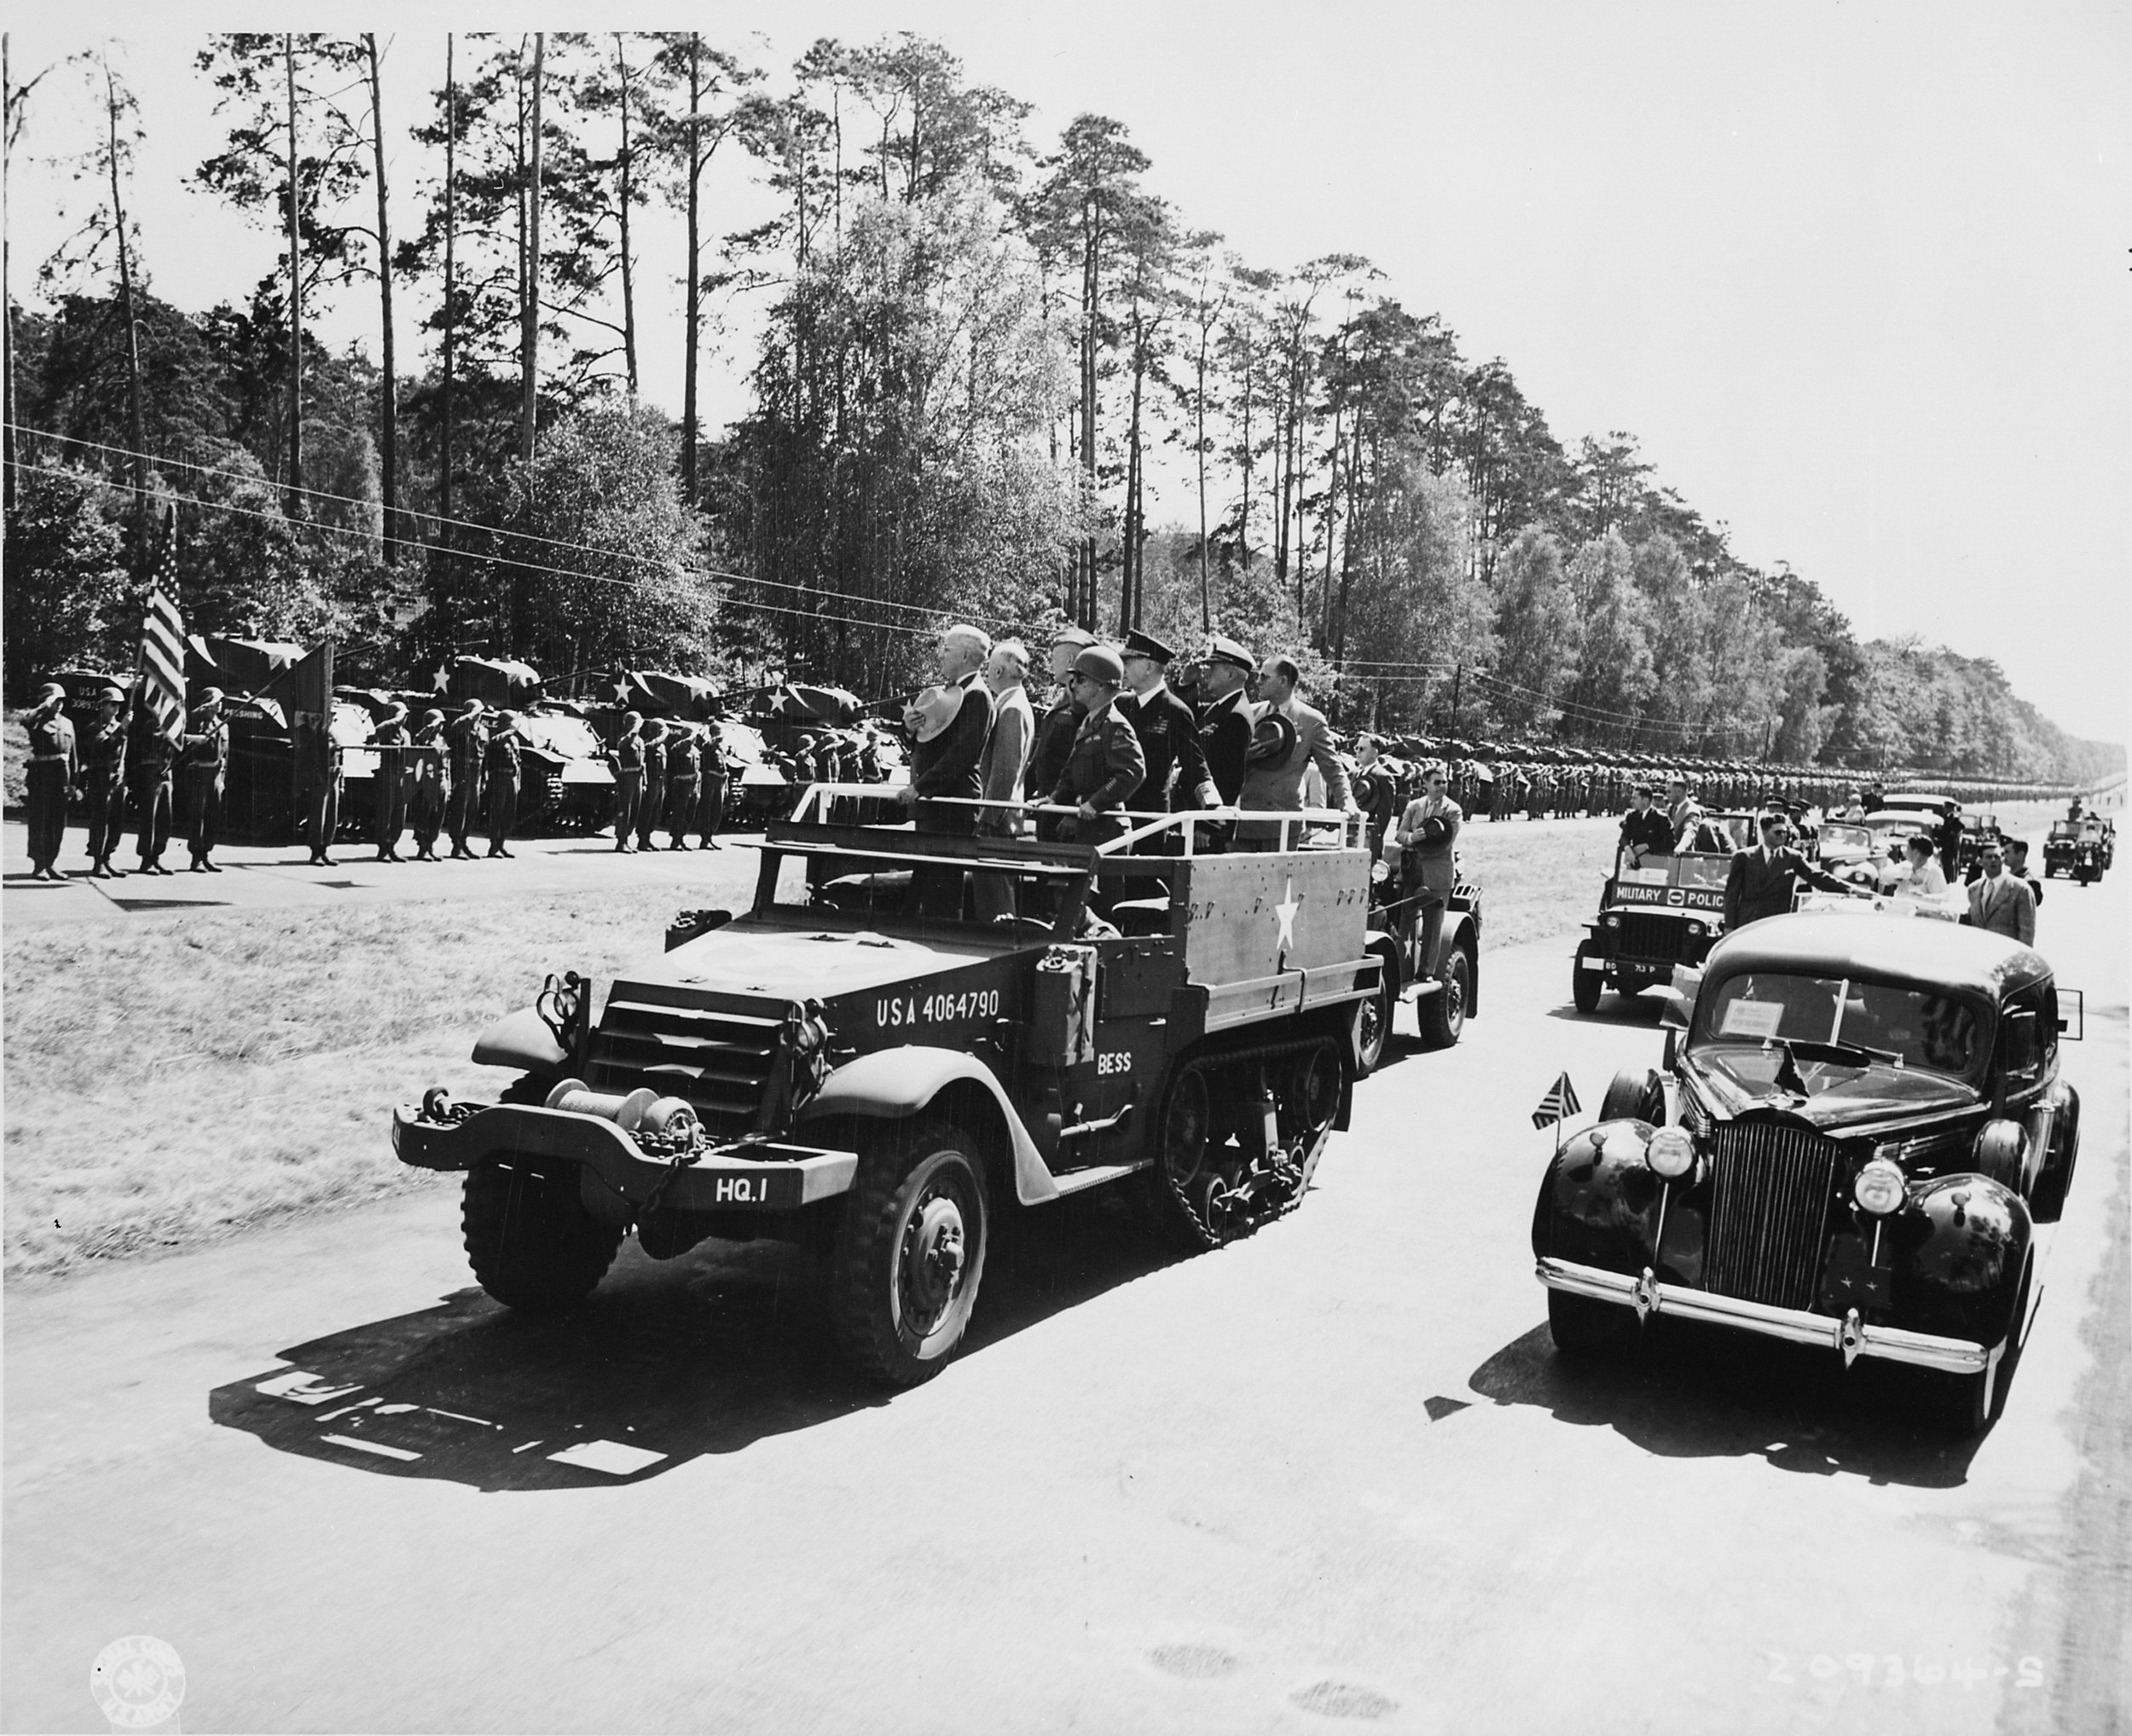 President Harry S. Truman reviews the 2nd Armored Division, deployed along the autobahn leading from Potsdam to Berlin, Germany. President Truman is in this area to attend the Potsdam Conference. 16 July 1945. NARA photo # 198766